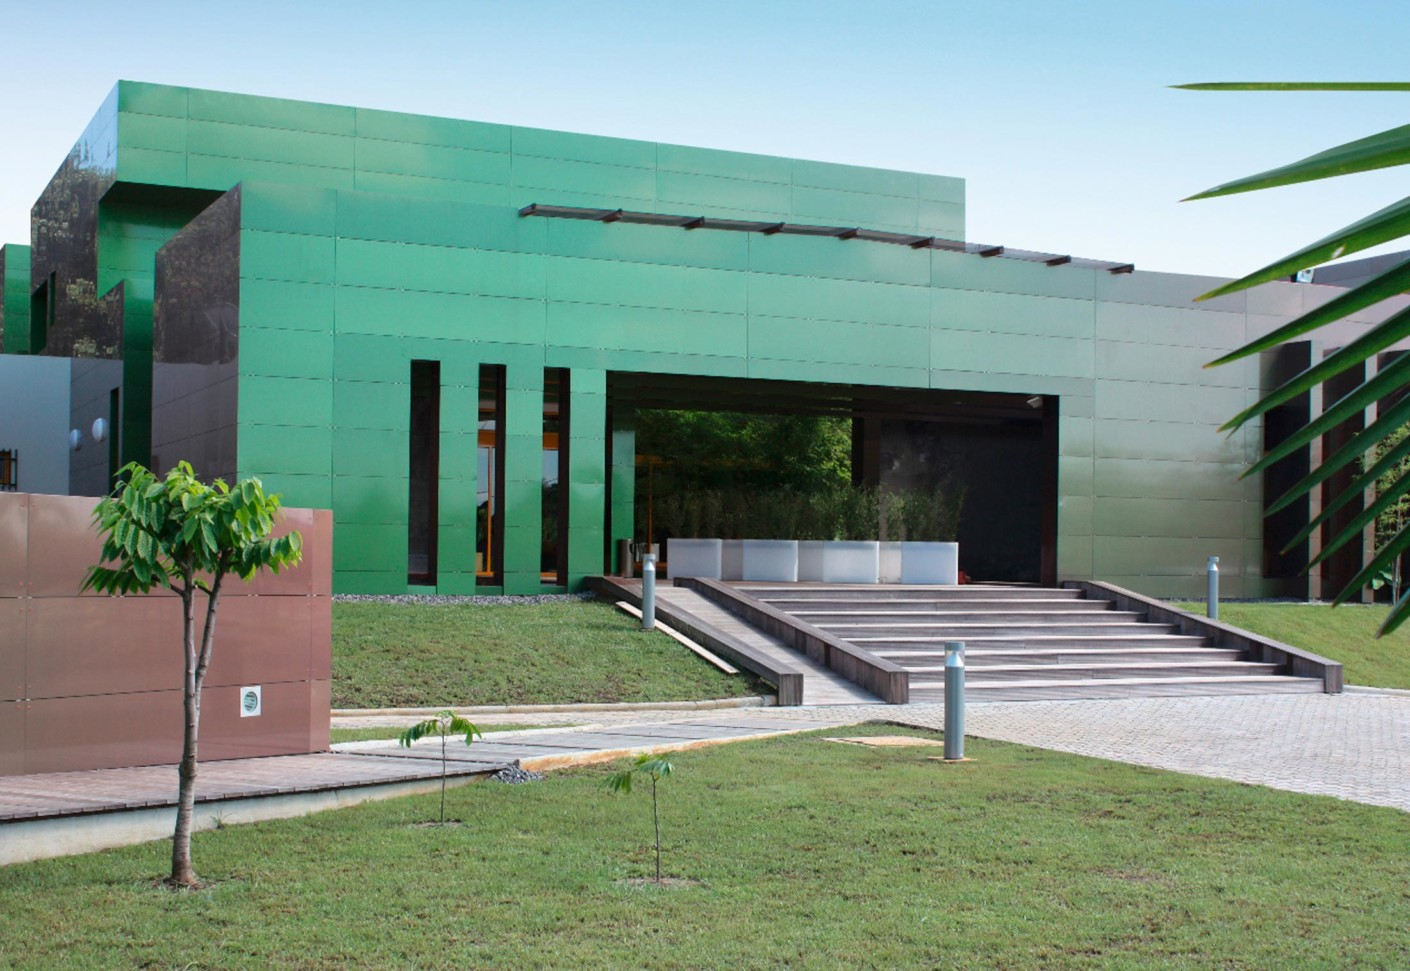 Reynobond Aluminum Composite Panels : Reynobond effects by alcoa architectural products stylepark